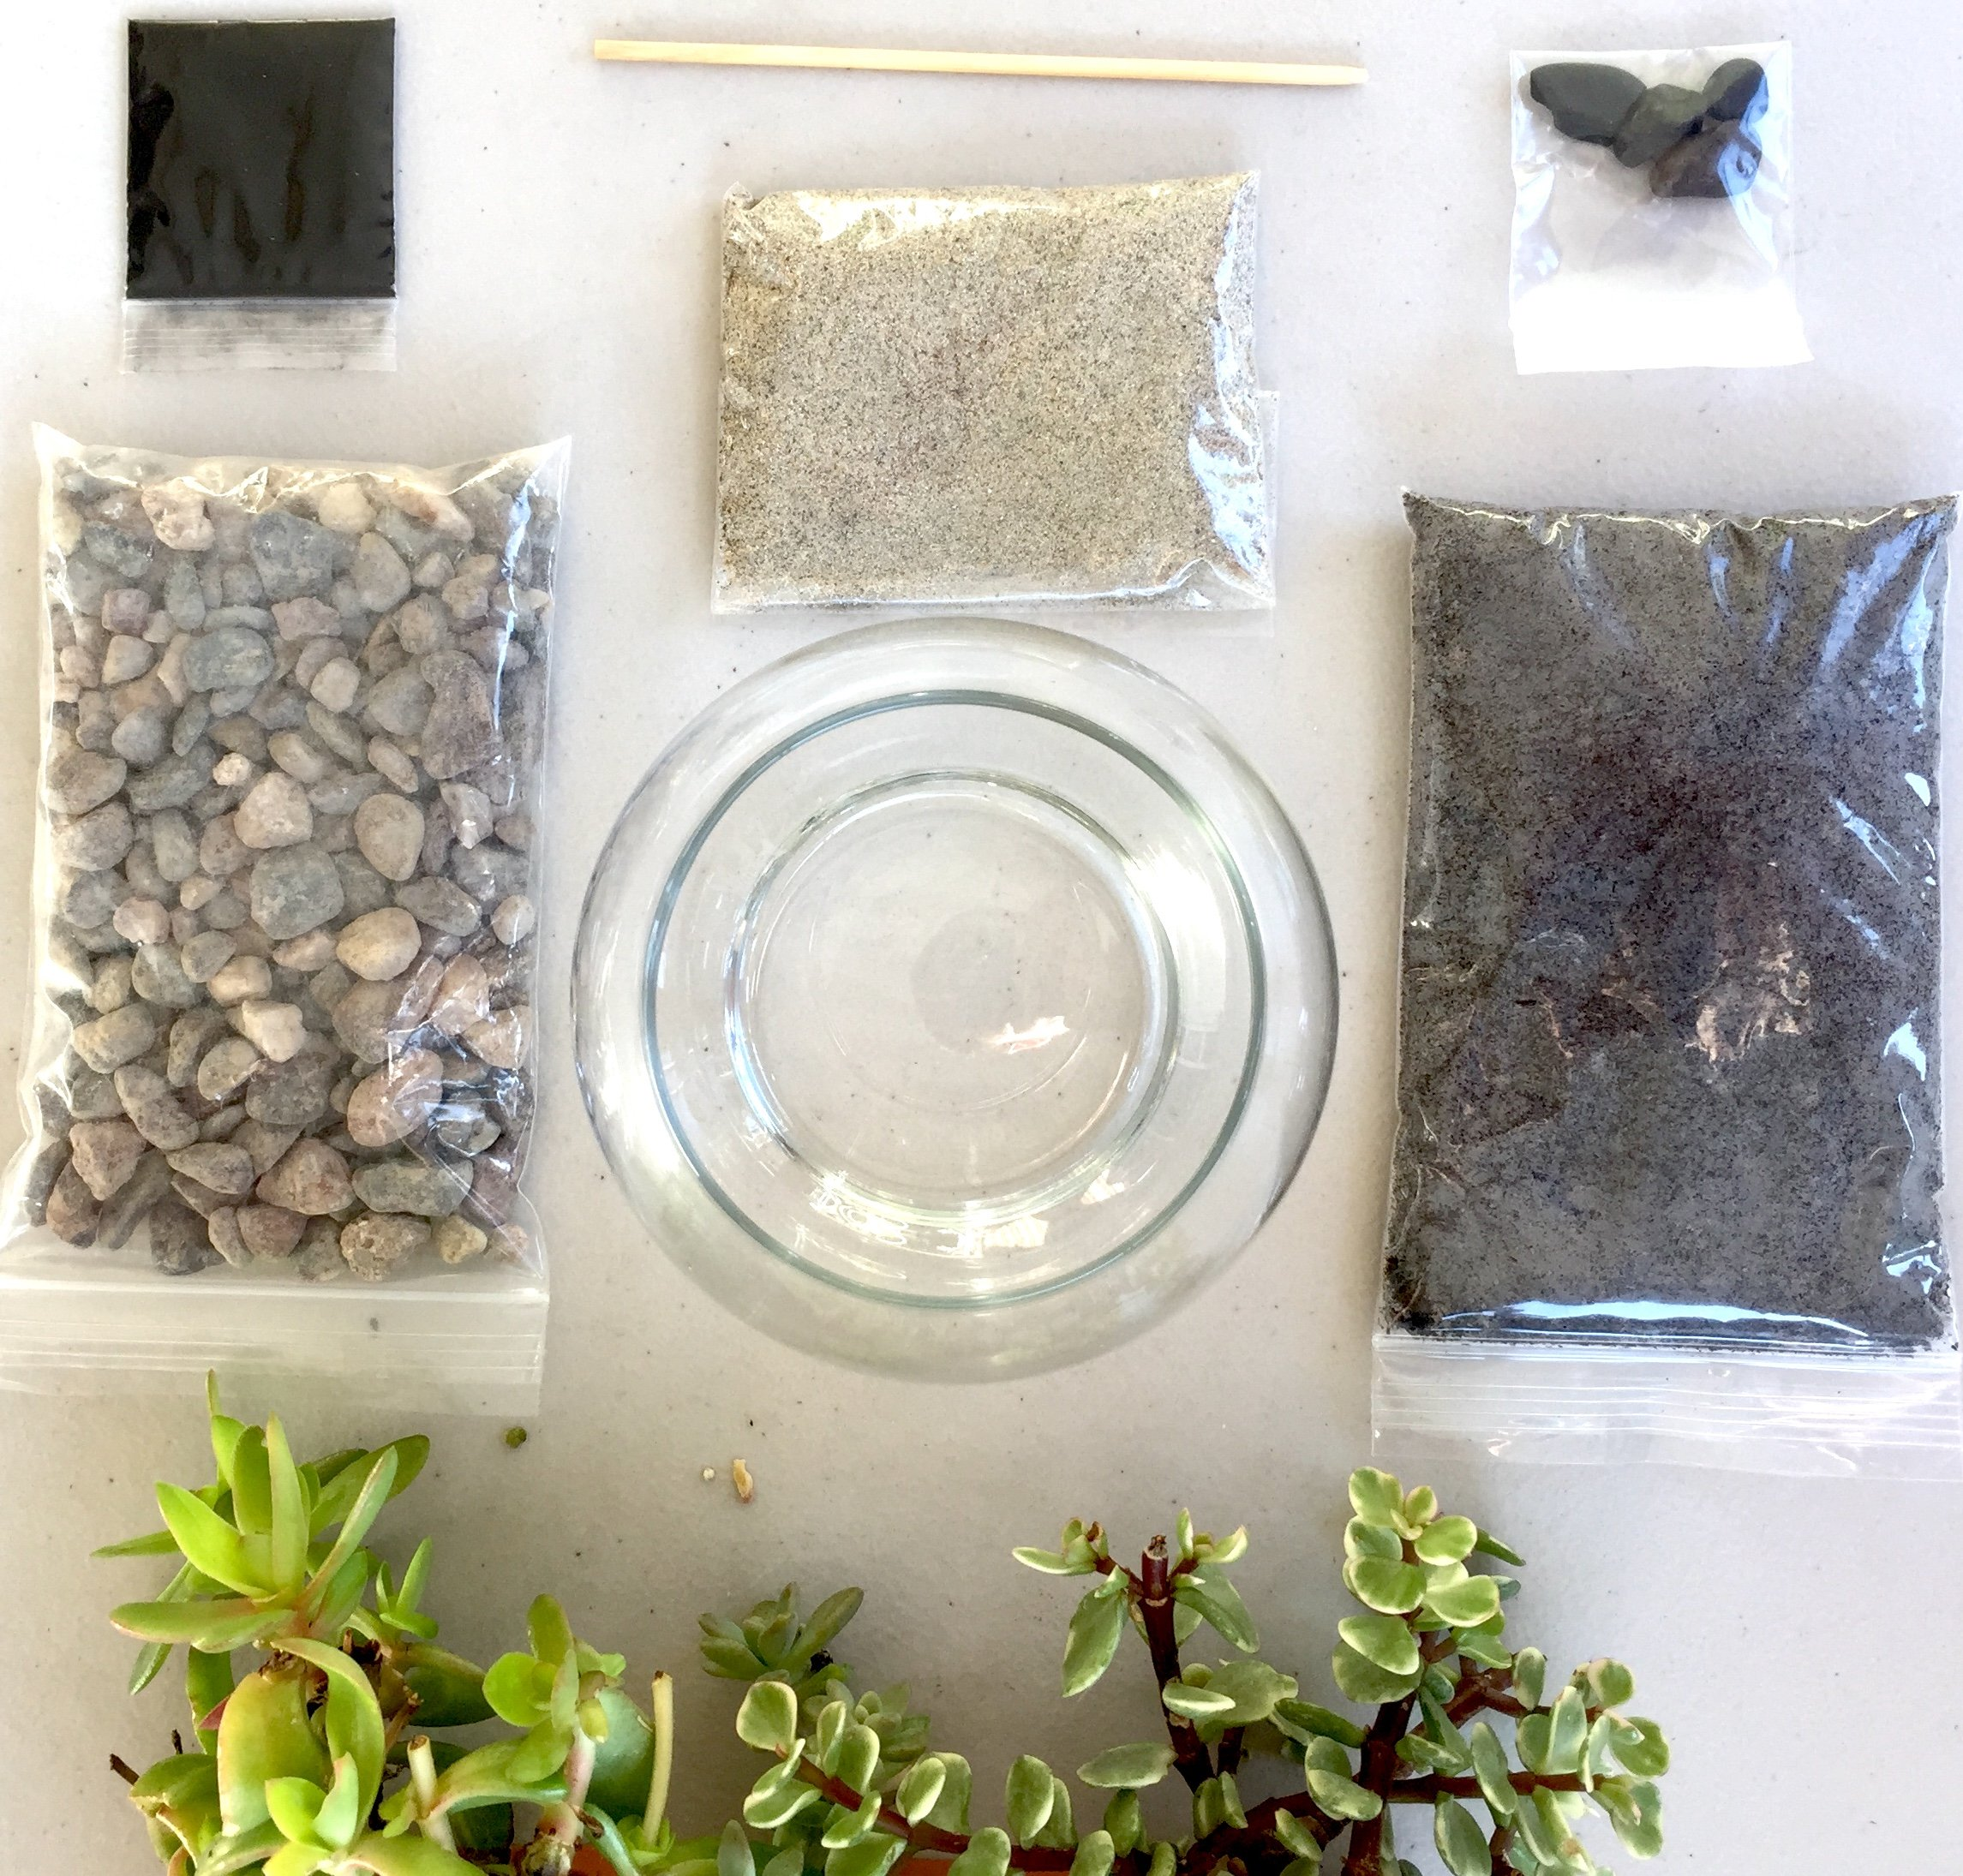 Complete Terrarium Kit: Succulent Planter with Glass Globe, Organic Soil, Beach Sand & Decorative Stones, All Supplies for Succulent, Cactus, and Fairy Garden (5 x 4.5 inches)